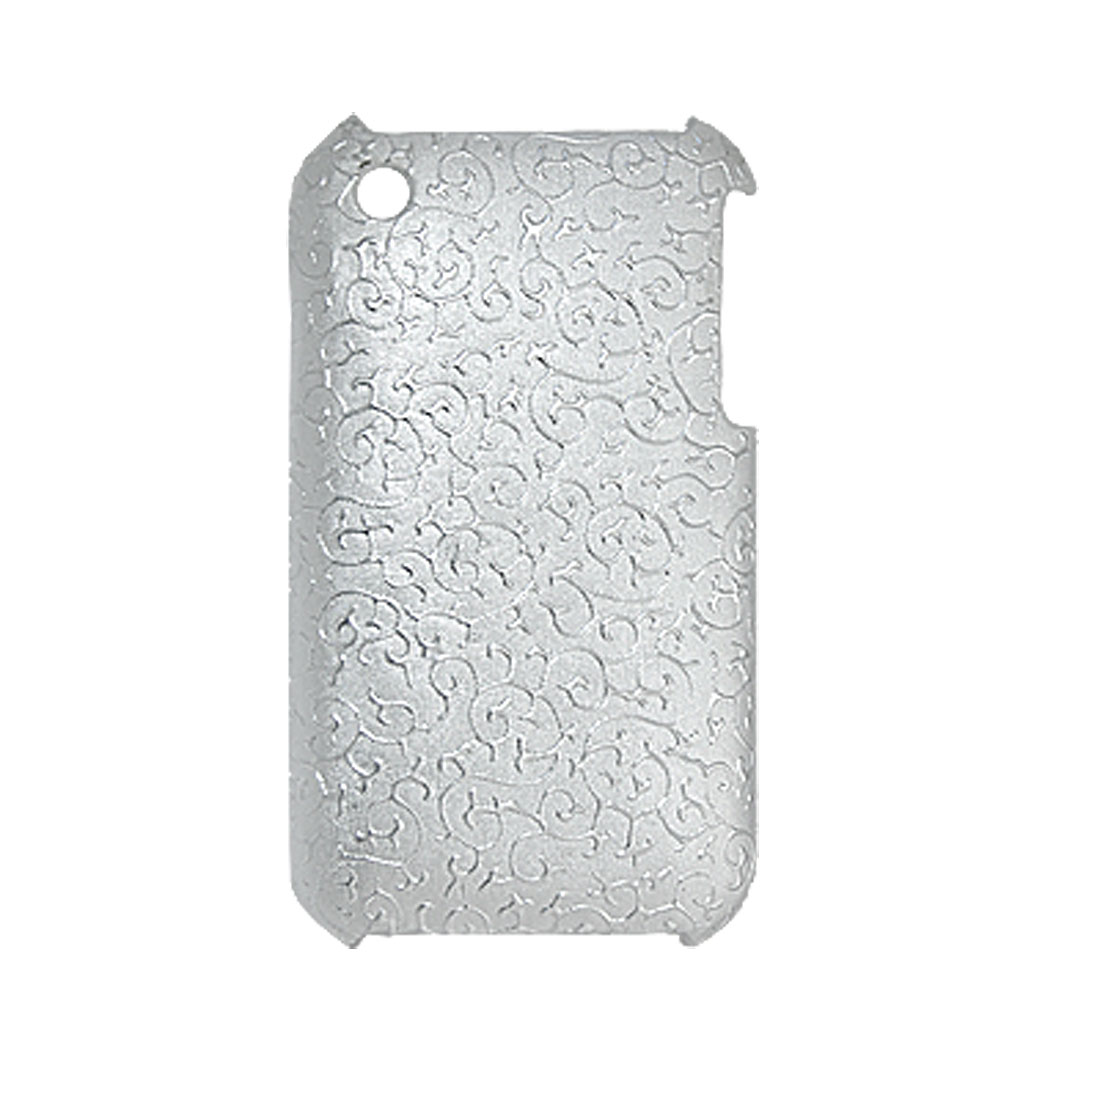 Silver Tone Plastic Phone Shell Back Case for iphone 3G